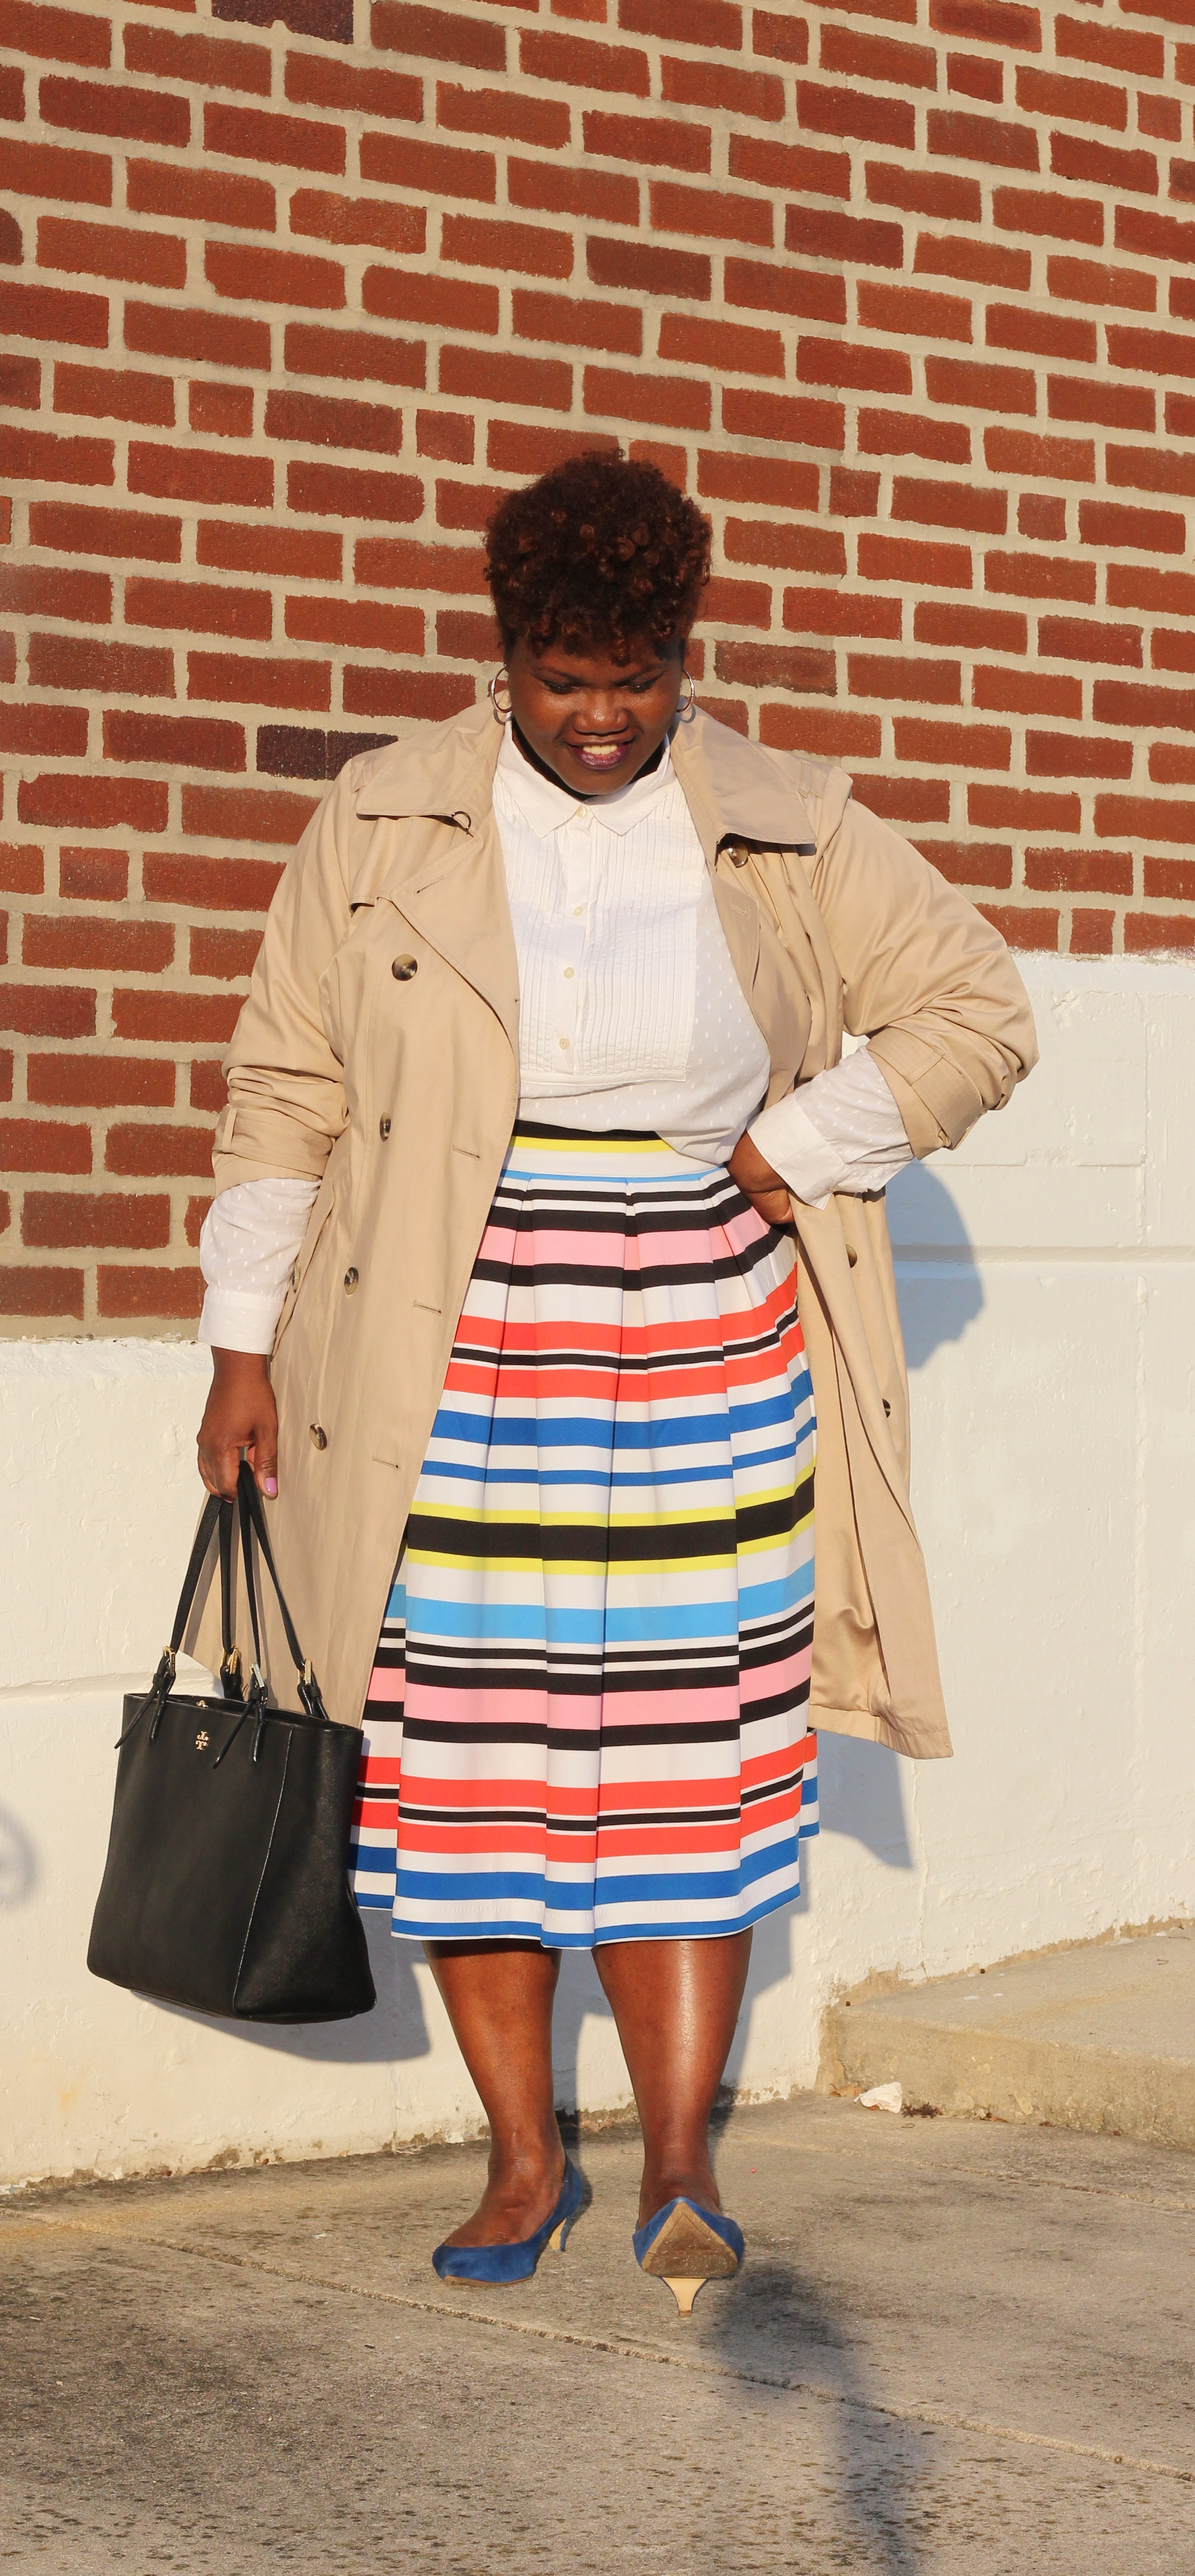 plus size blogger, plus size blogs, trench coat, spring fashion, midi skirts, plus size midi skirt, stripe skirt, multicolor stripe skirt, collared shirts, button up shirt, natural hair, curvy women, curvy girls, curvy woman, curvy bloggers, curvy blogs, tory burch, satchel, suede shoes, mid heels, kitten heels, nine west, blogs for women over 40, over 40 blogs, over 40 fashion blogs, over 40 plus size blogs